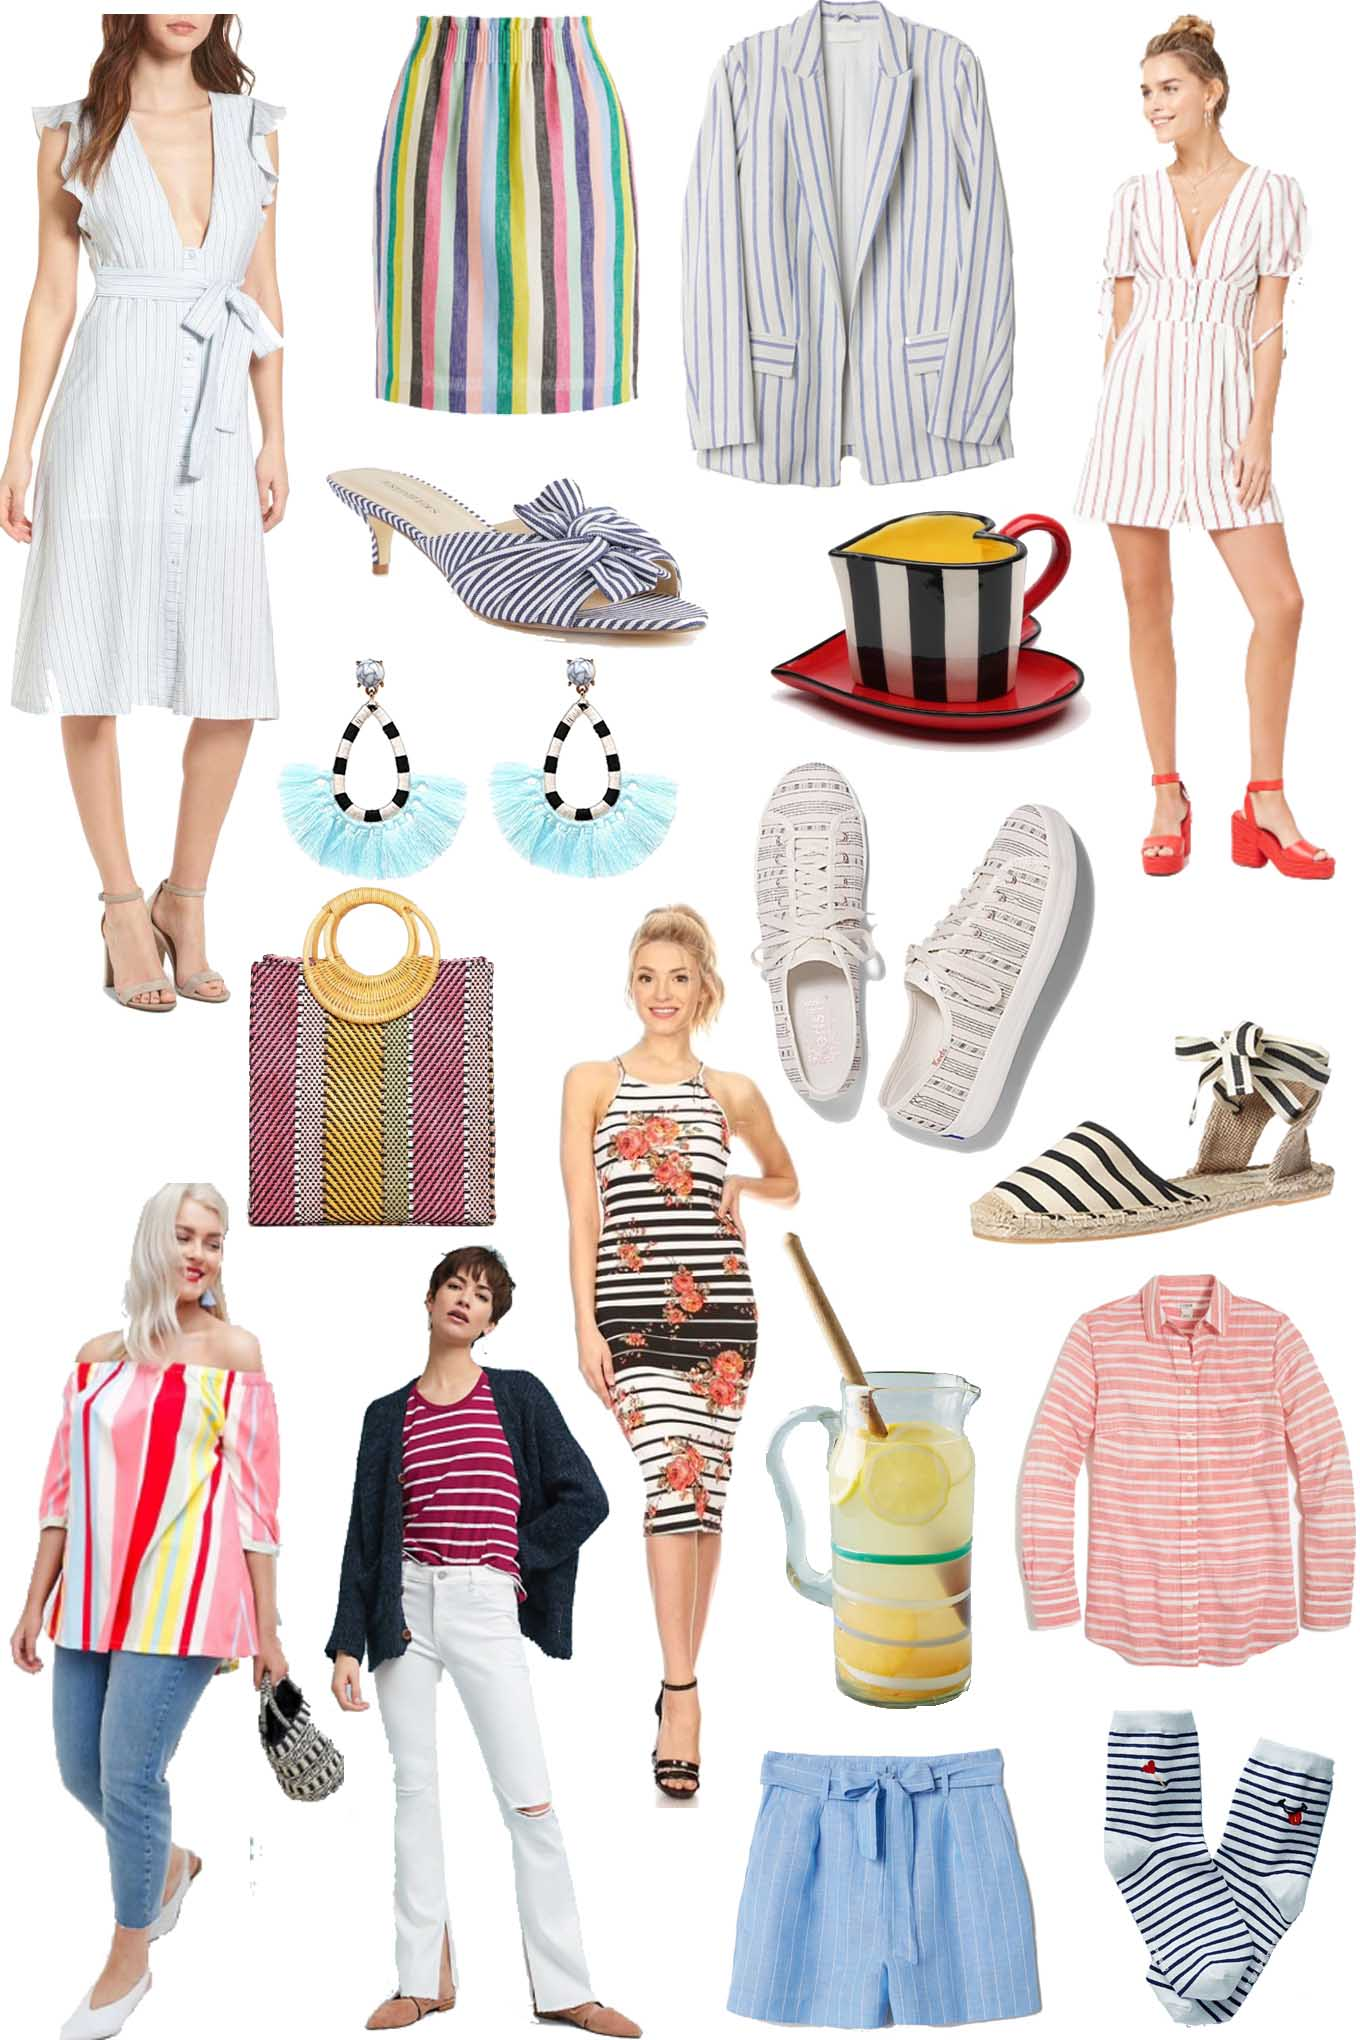 Friday Fizz: Springy, Striped Clothing Under $60 featured by Chicago Fashion blogger, Glass of Glam